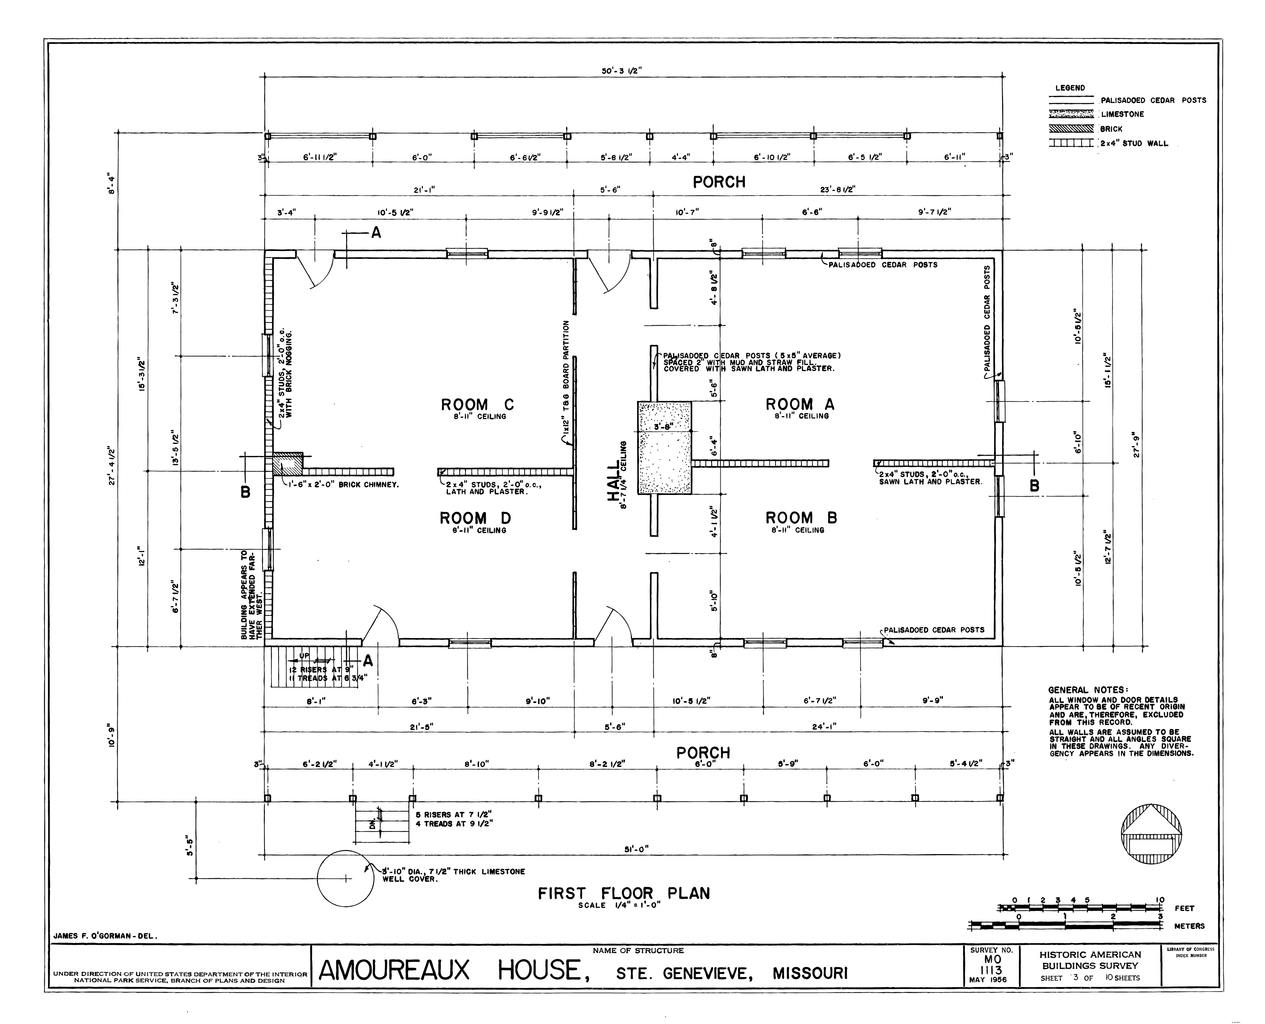 FileDrawing Of The First Floor Plan Amoureaux House In